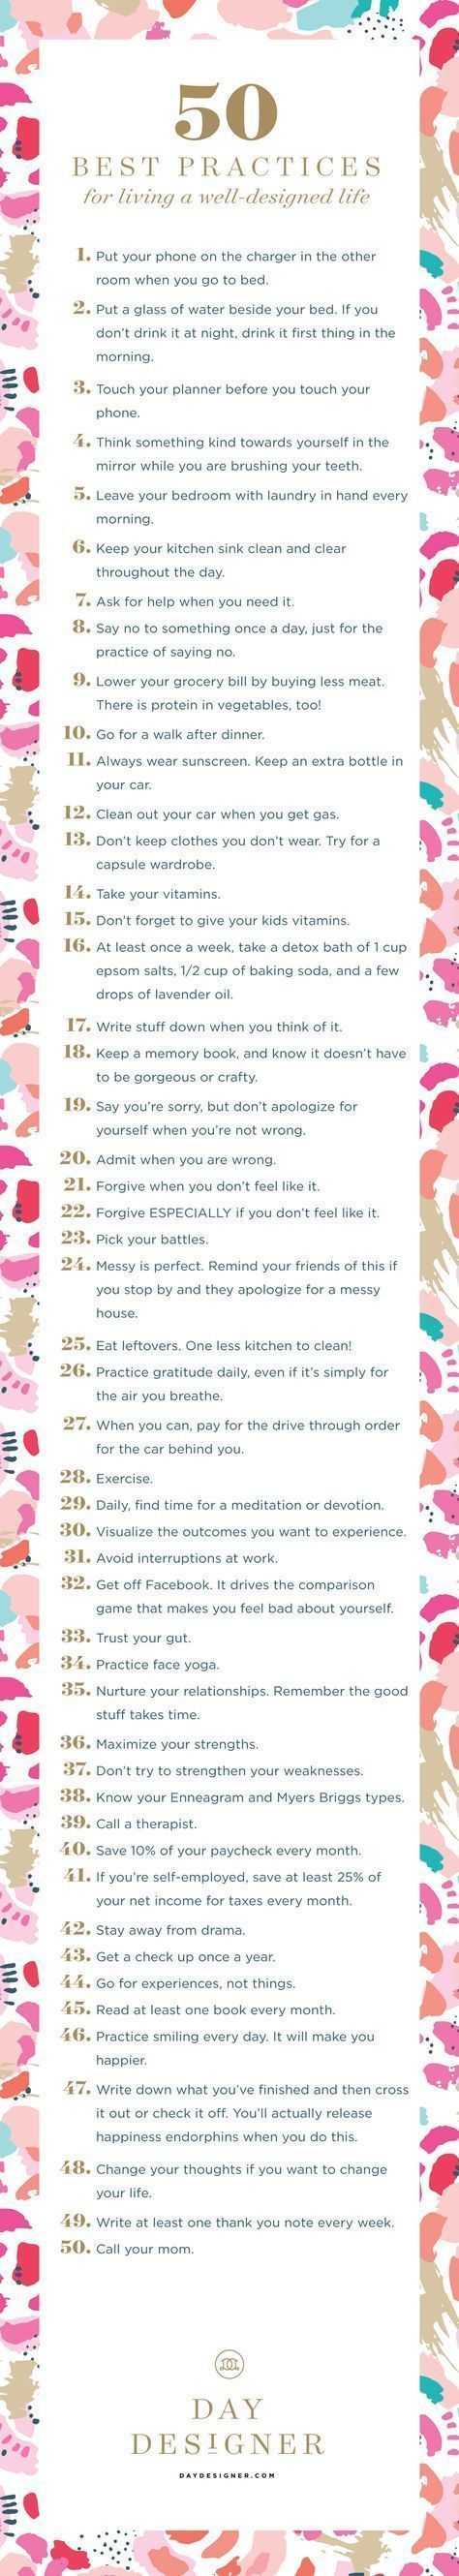 Fifty Best Practices for Living a Well-Designed Life | Day Designer®️️️️ • 2016 Daily Planner